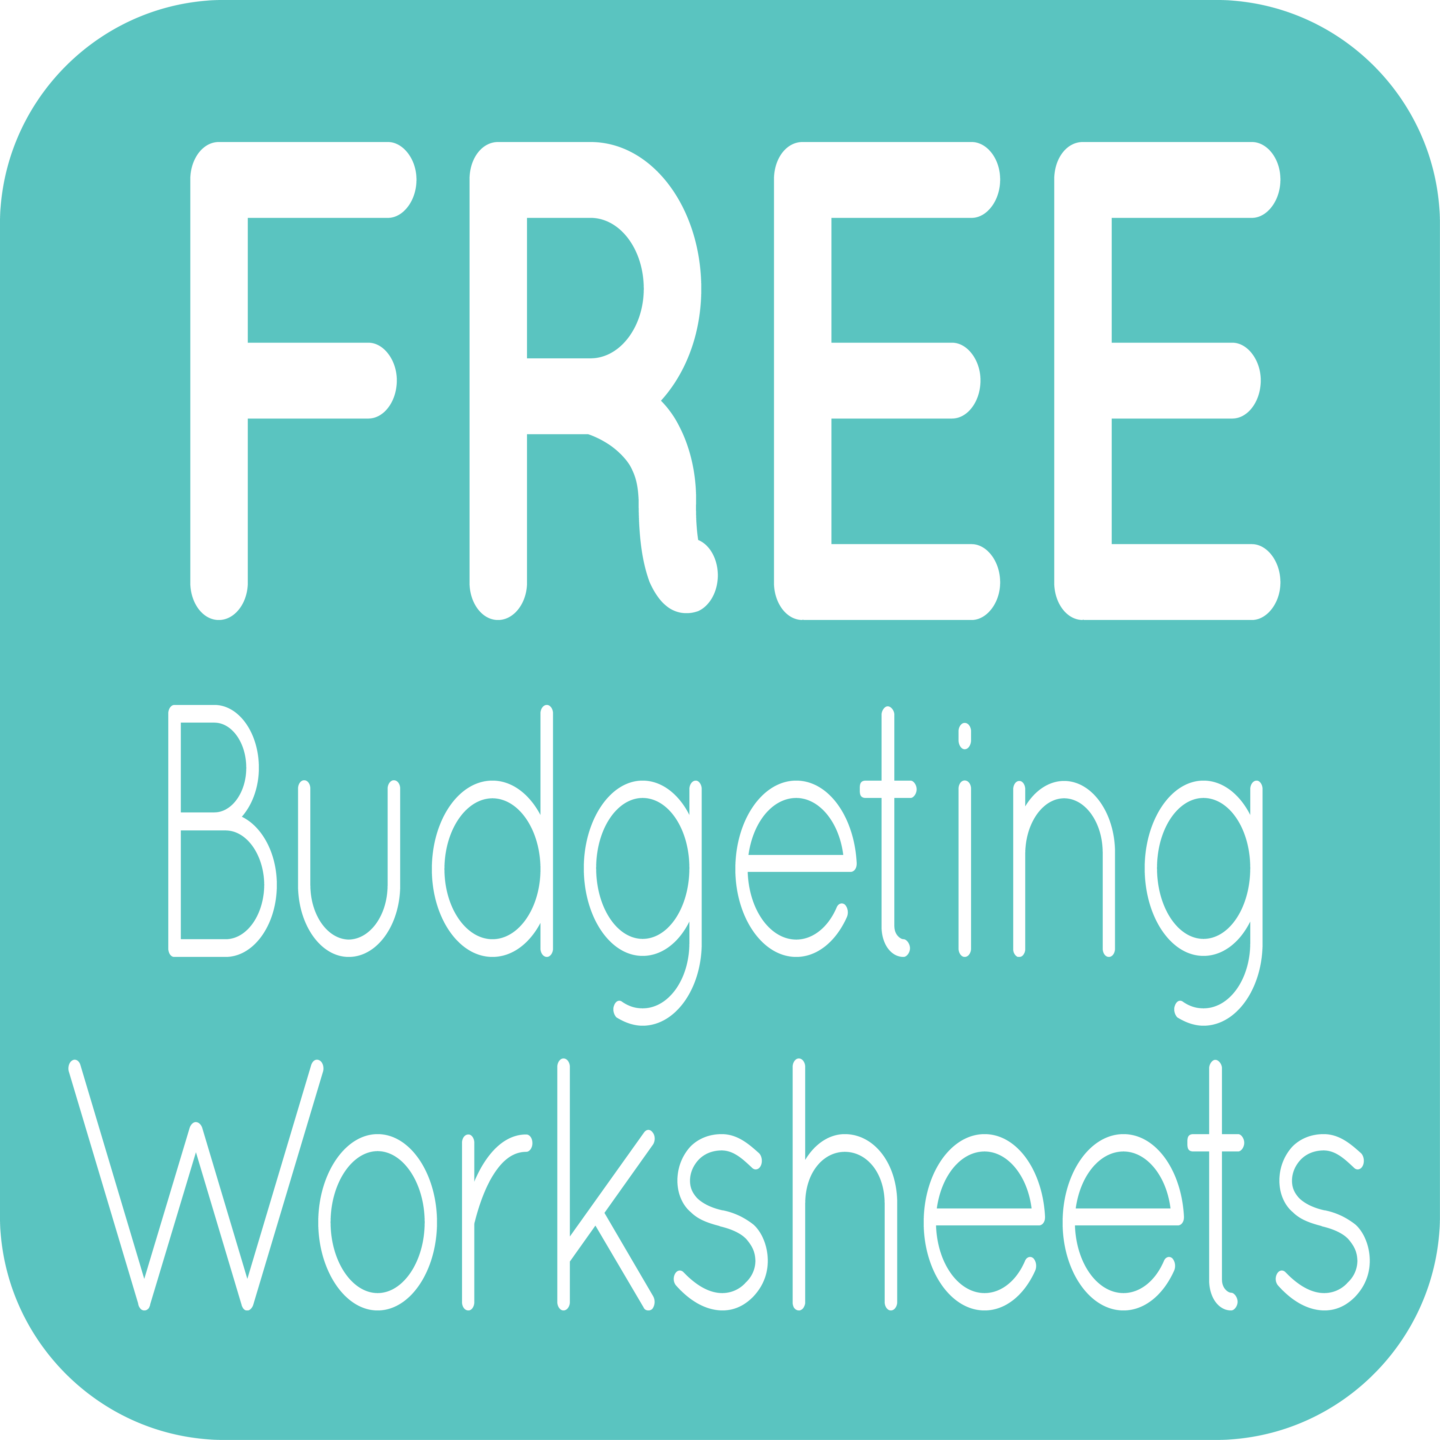 Free Budgeting Worksheets